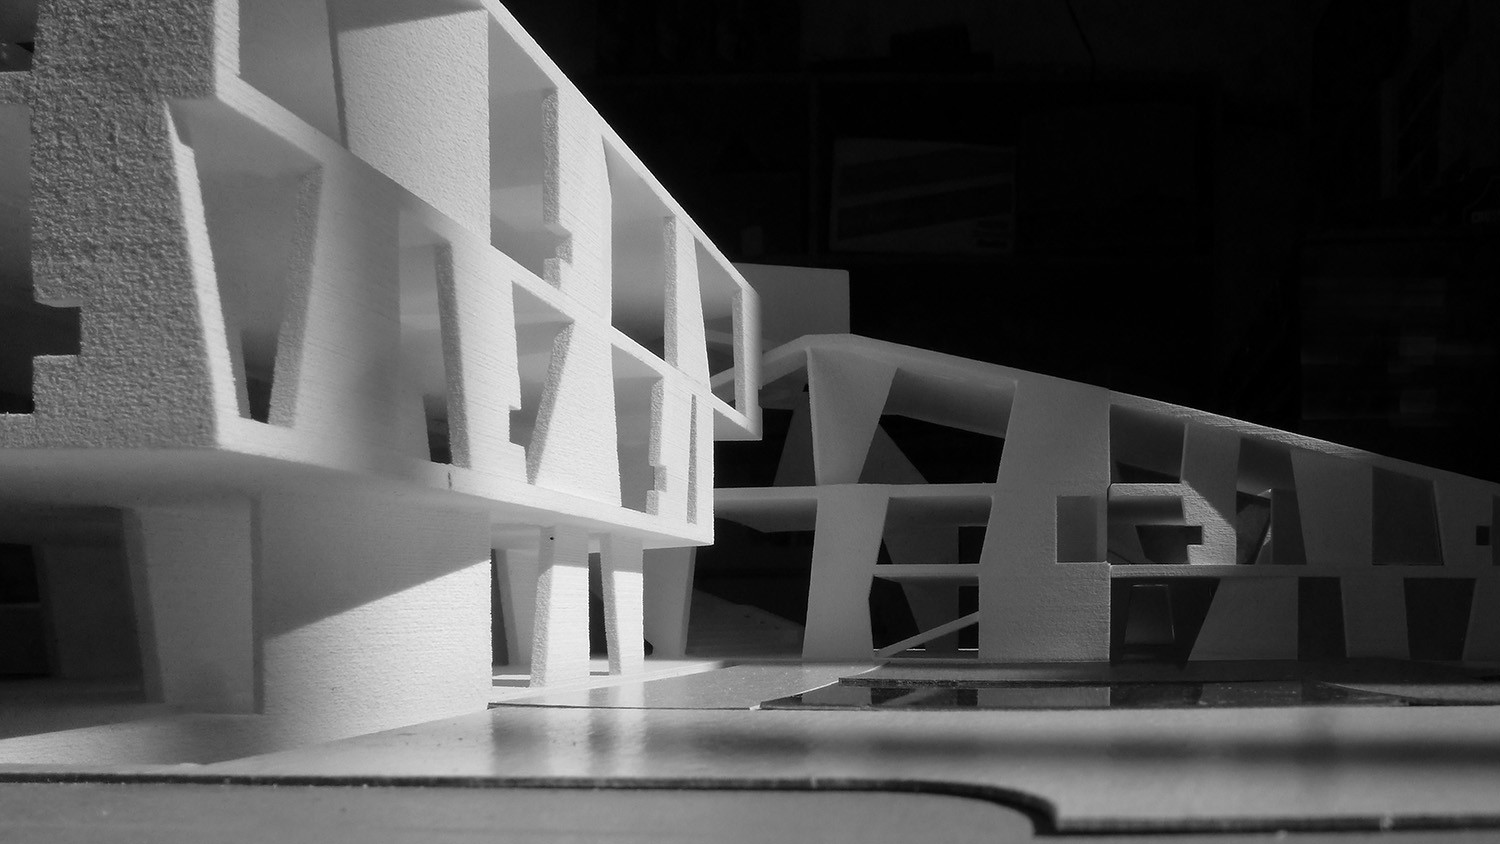 https://s3.us-east-2.amazonaws.com/steven-holl/uploads/projects/project-images/StevenHollArchitects_Glassell_P1180602_WH.jpg